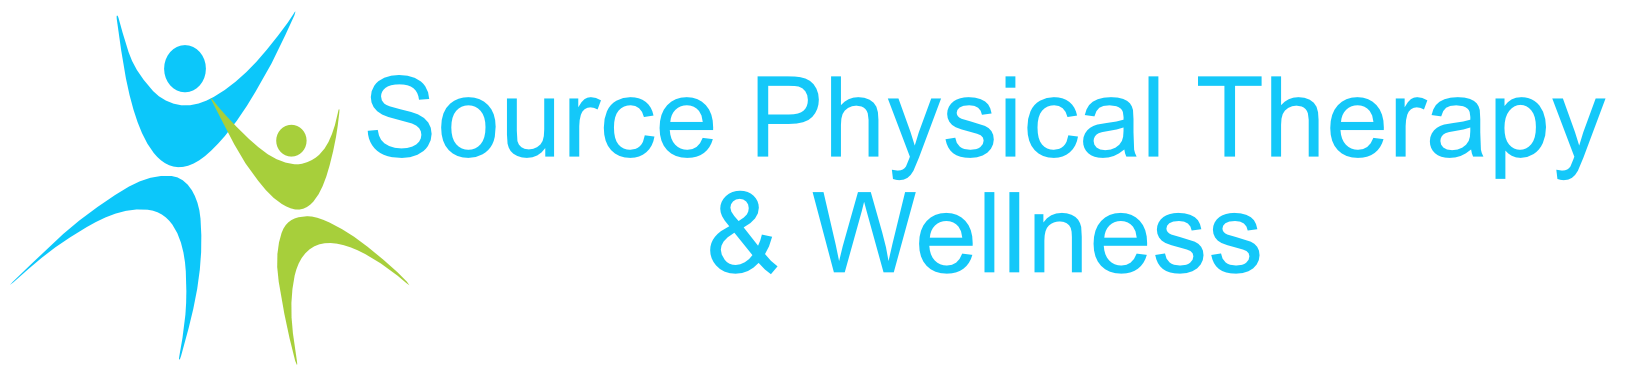 Source Physical Therapy & Wellness